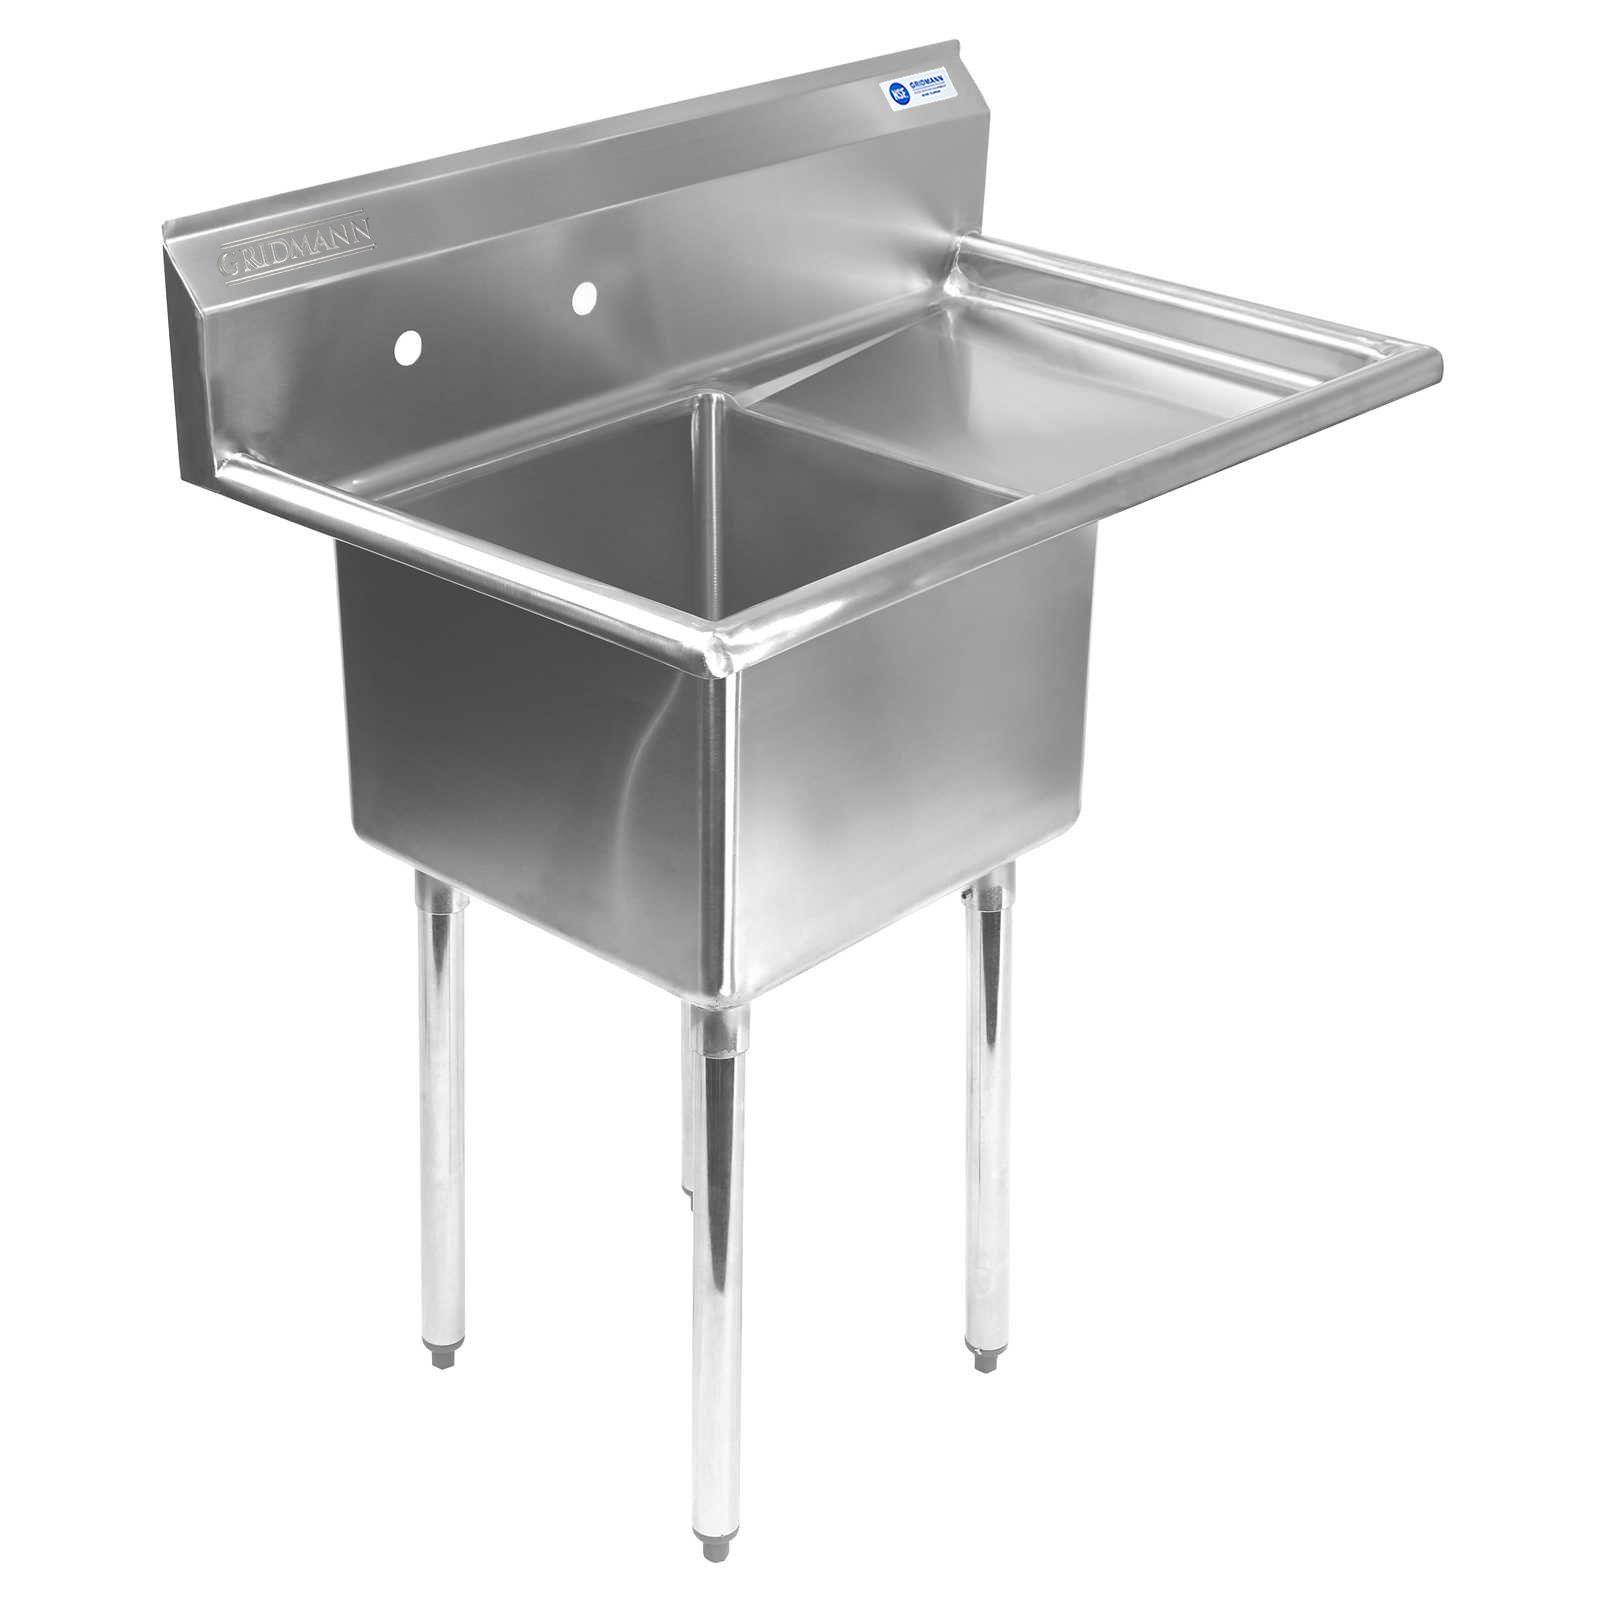 Commercial Stainless Steel Kitchen Utility Sink With Drainboard 39 Wide Stainless Steel Utility Sink Commercial Kitchen Sinks Utility Sink